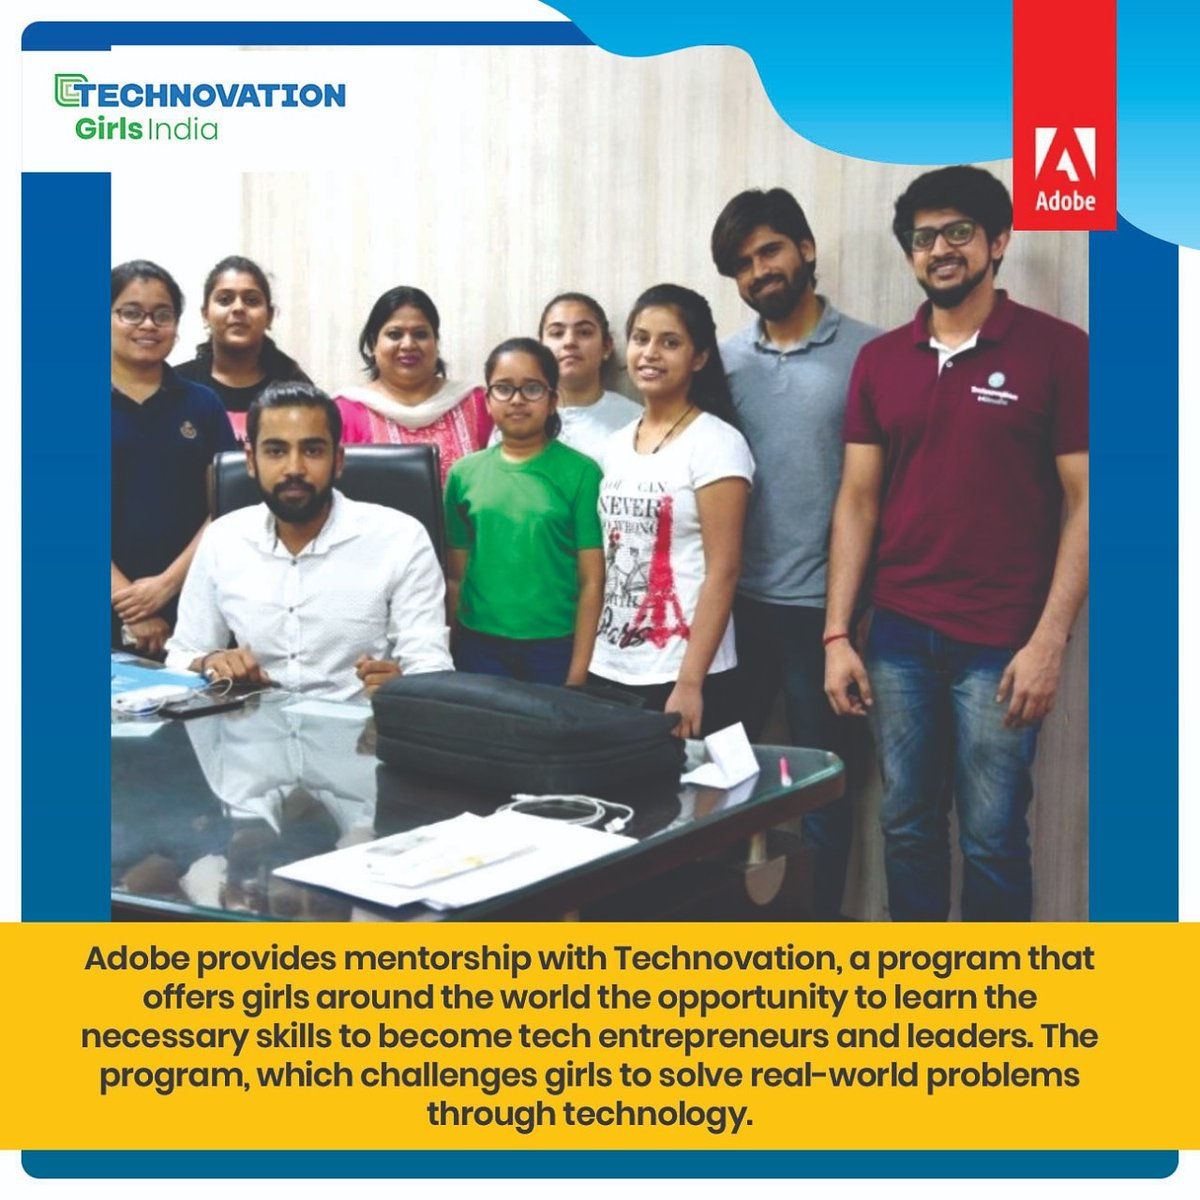 Technovation Girls #Technovation #TechnovationIndia #Technovation2020 #Coding #CodingLife #Adobe #AdobeLife #Learning #education #technology #GirlPower #womenempowerment https://t.co/56gYHHz9sb